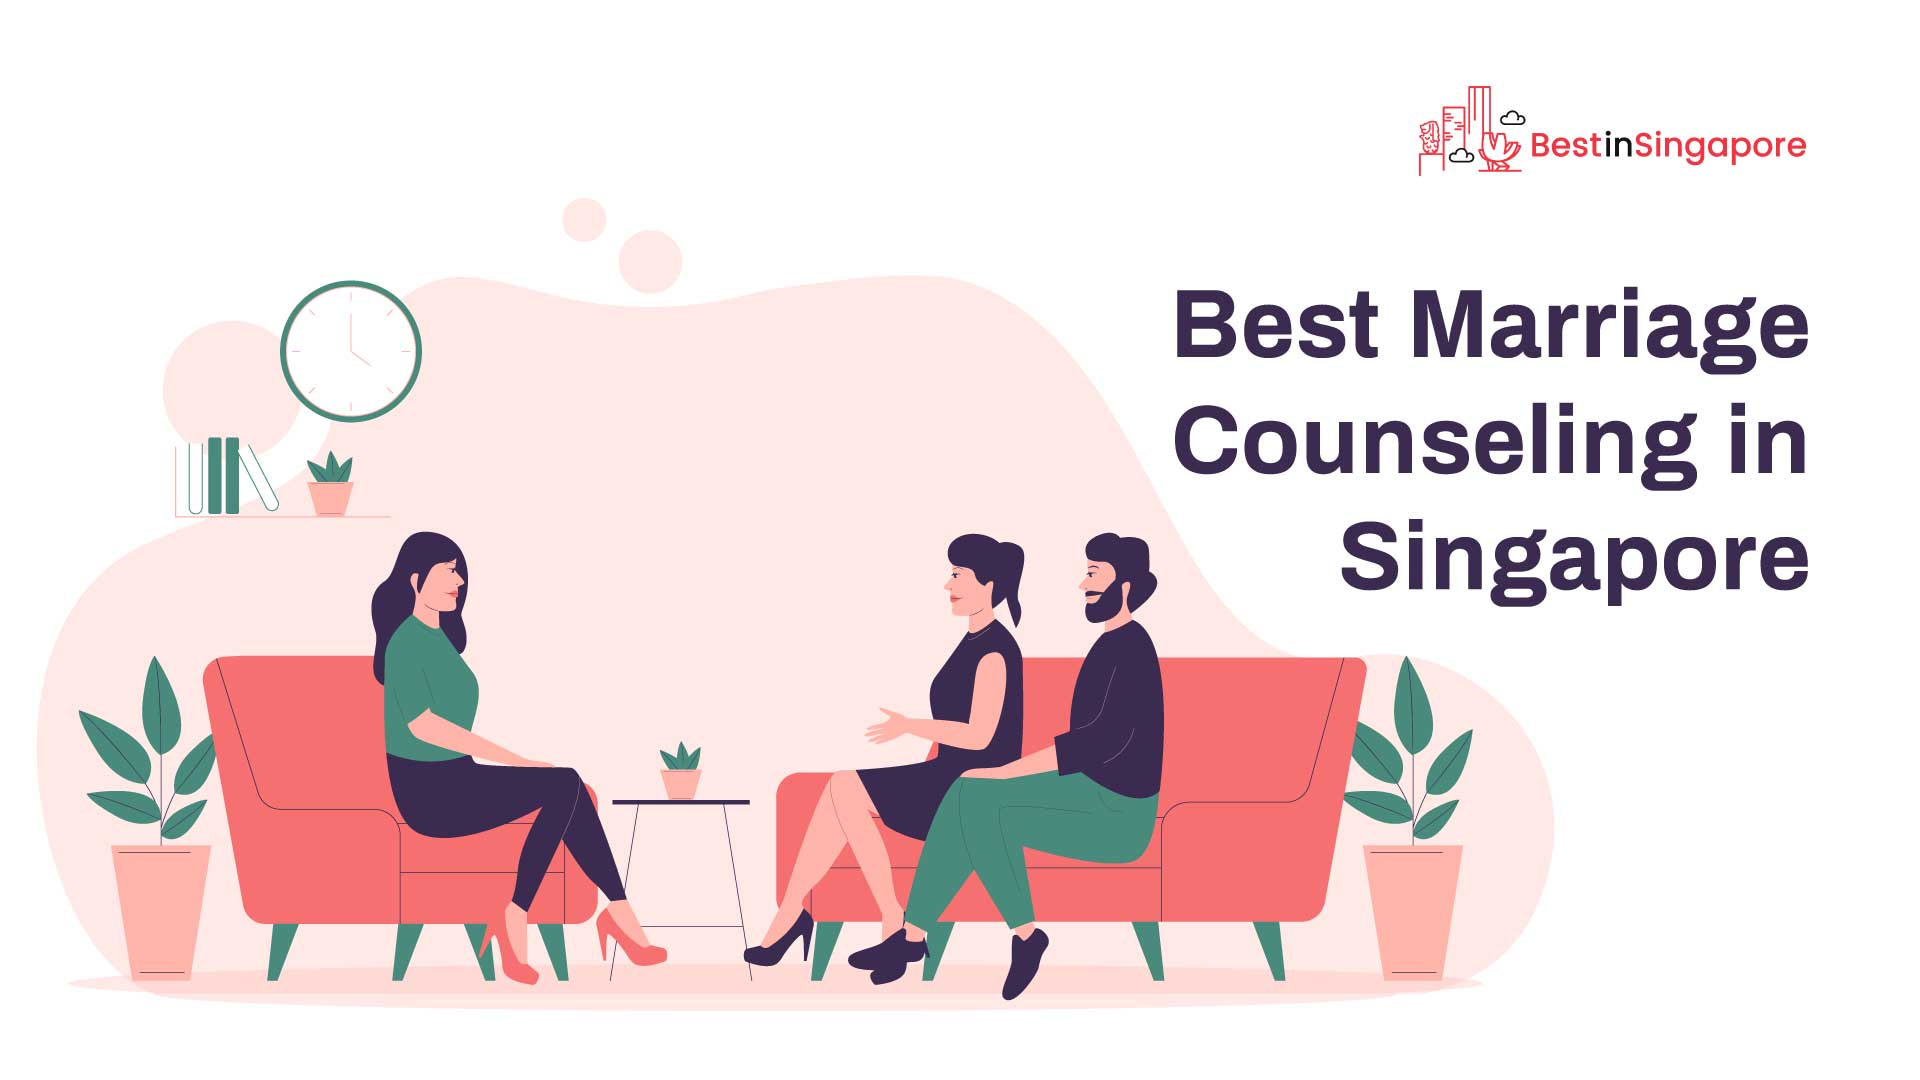 Best Marriage Counselling in Singapore